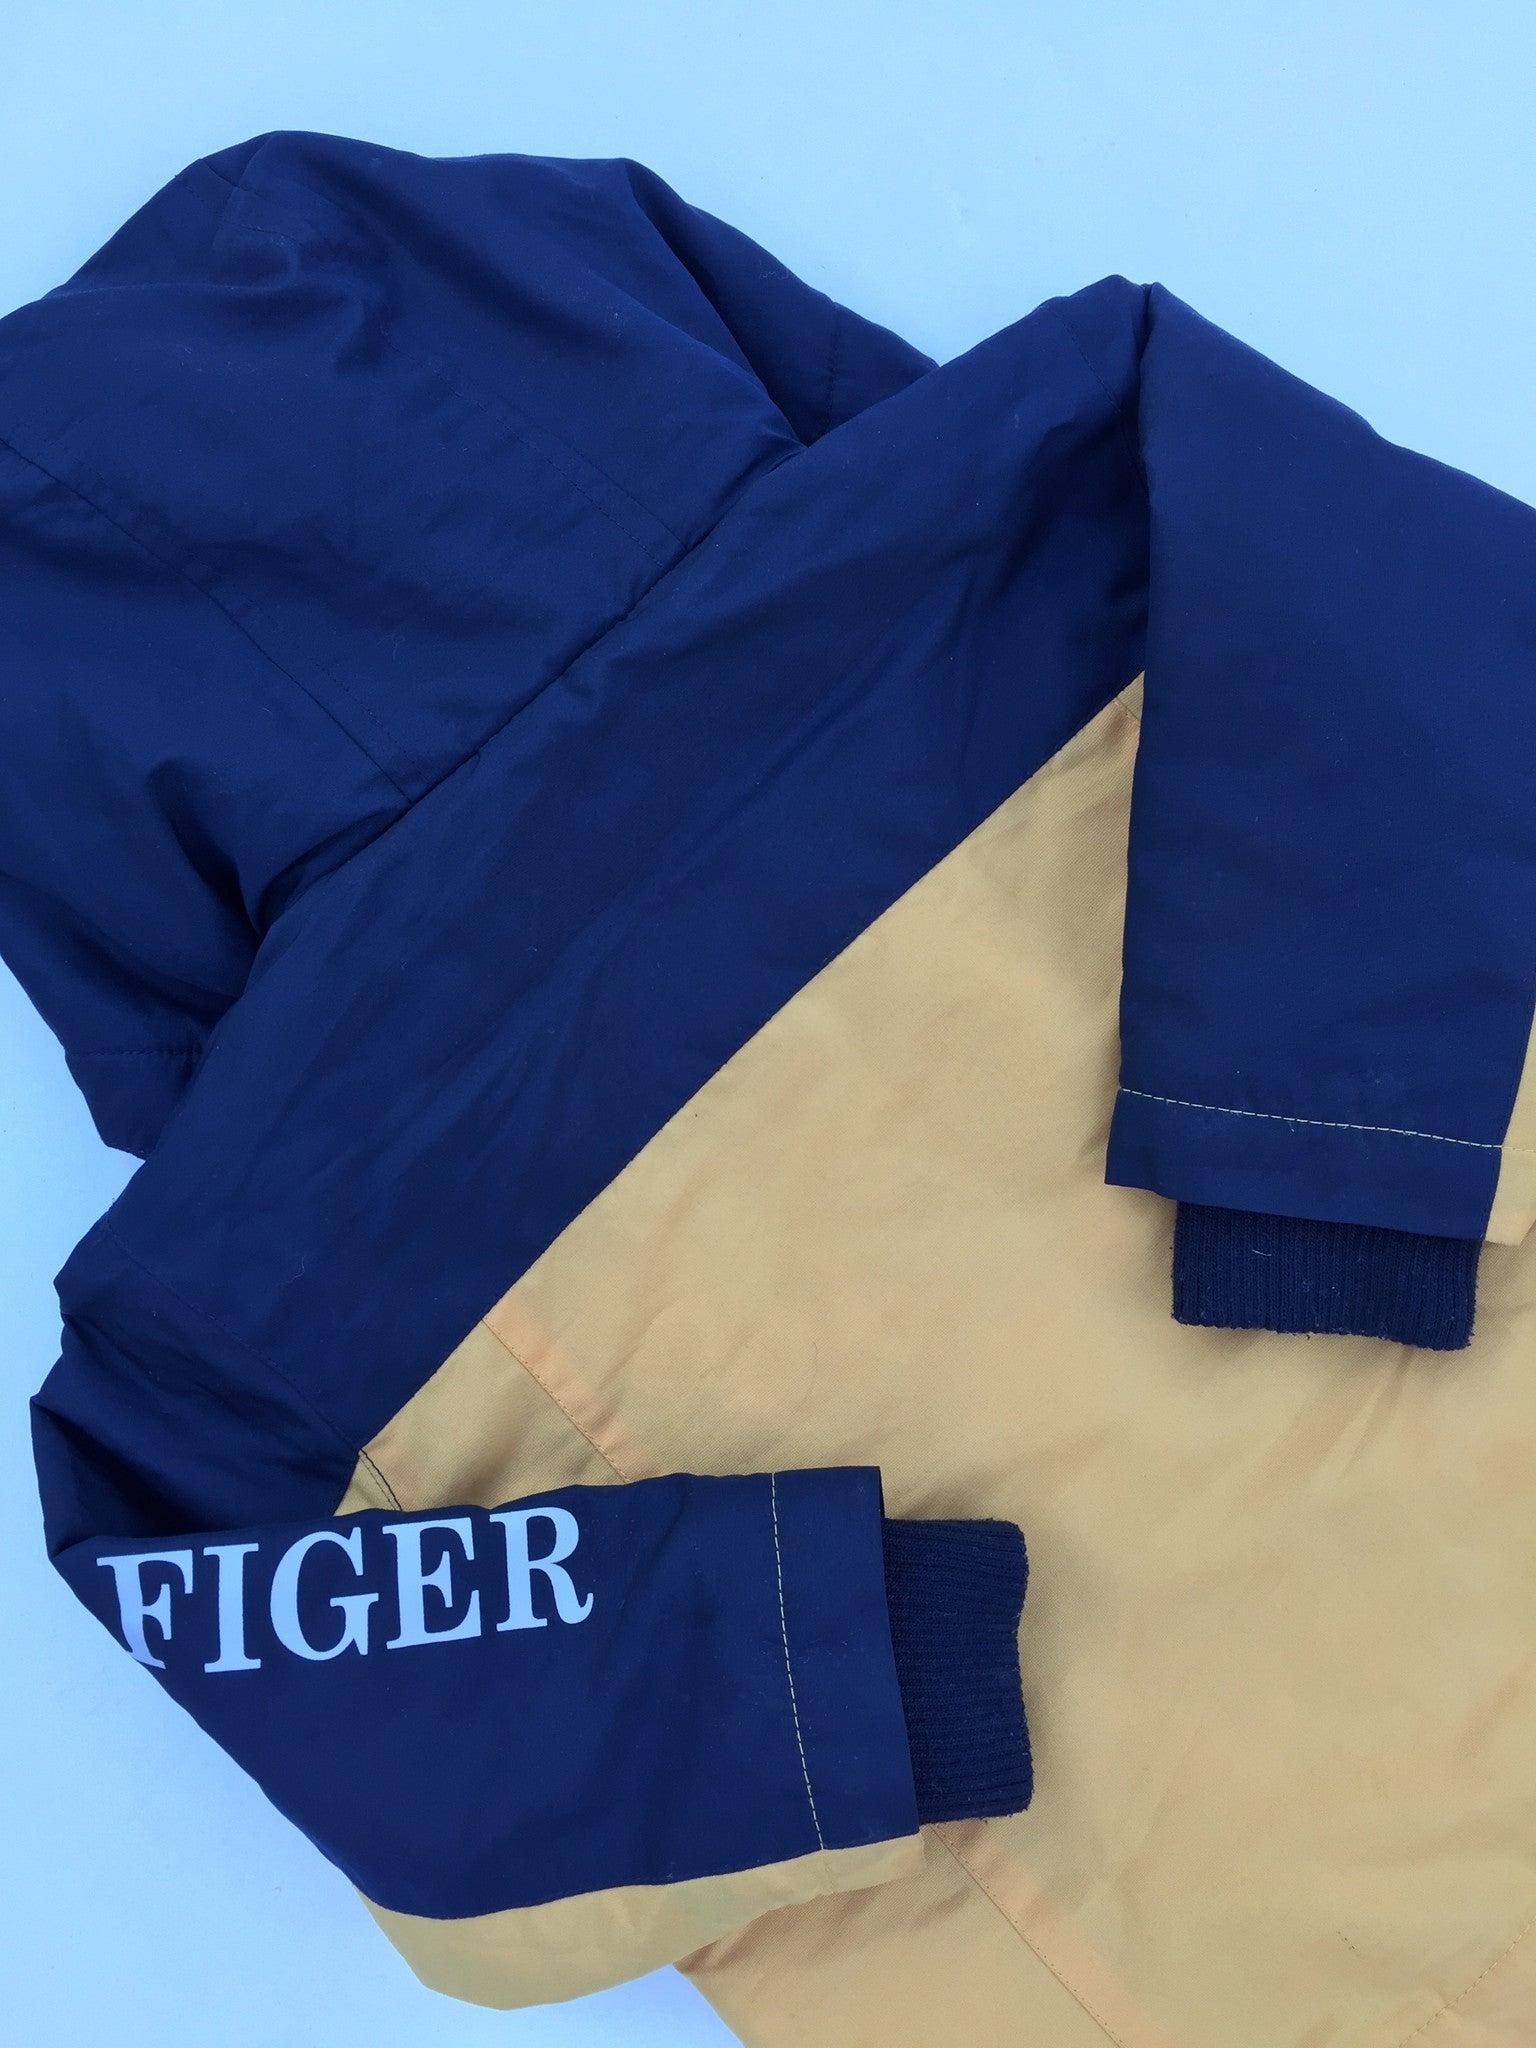 Tommy Hilfiger Winter Coat | 2T